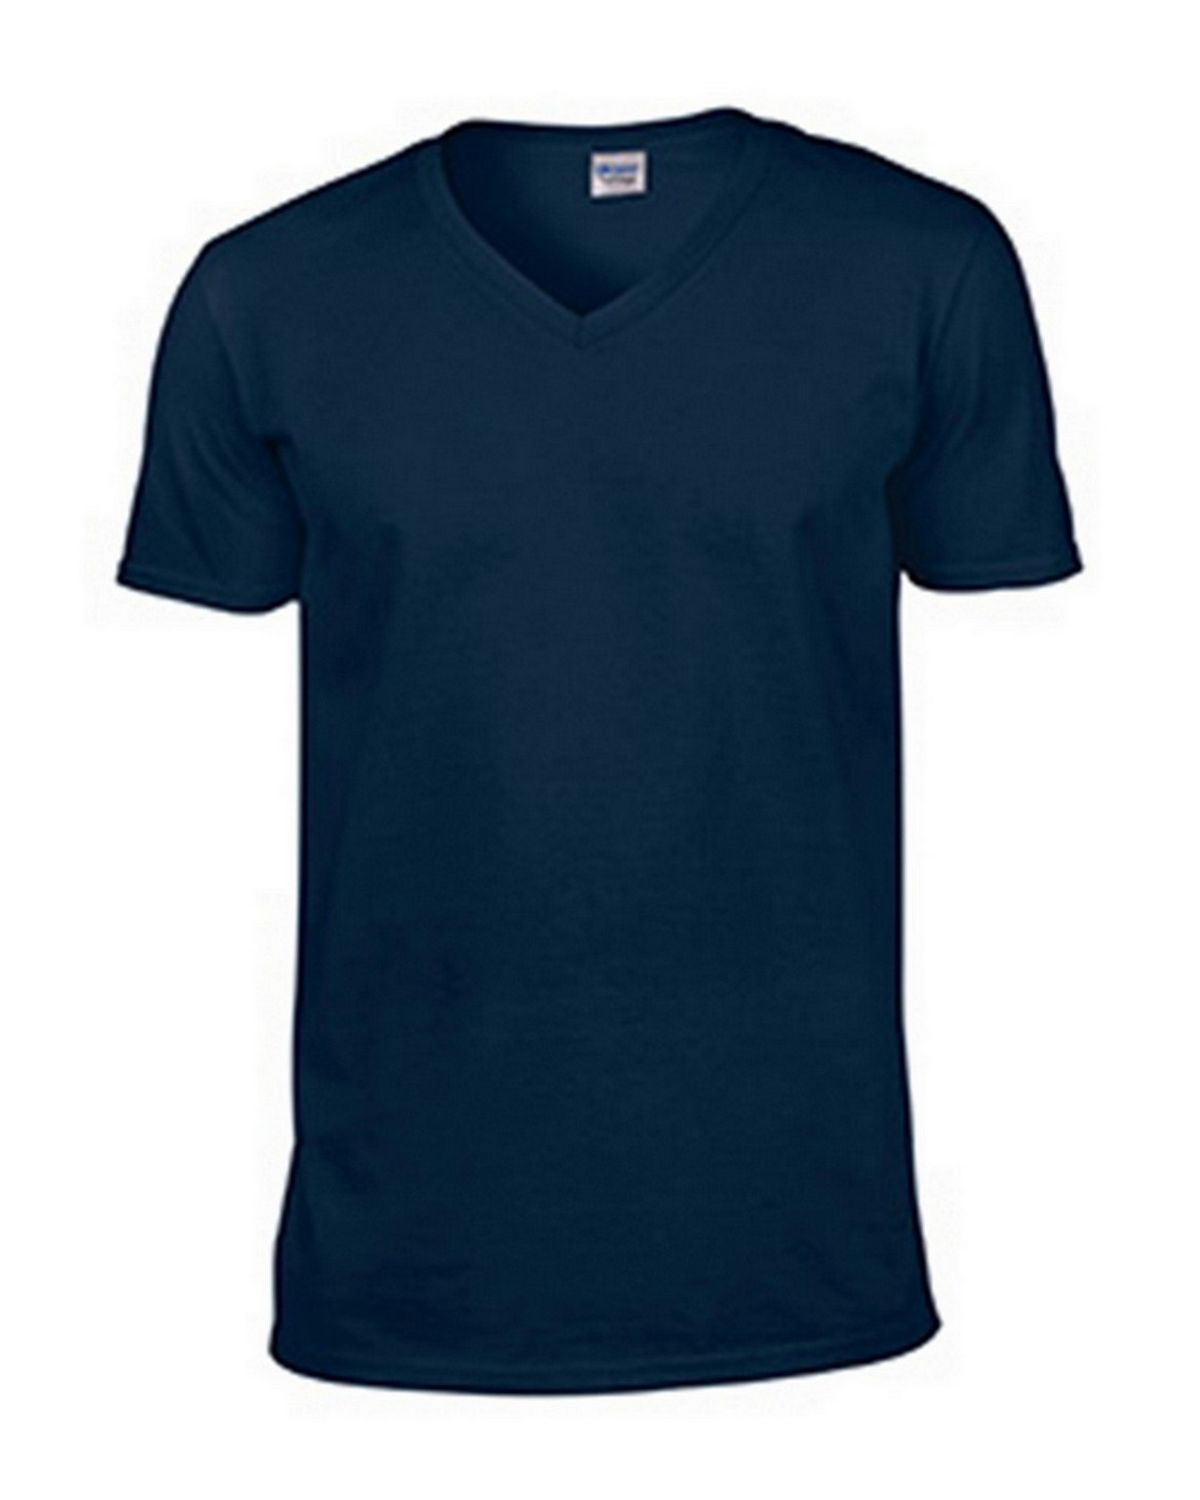 Gildan G64V00 Softstyle Adult V-Neck Tee - Navy - 3X G64V00